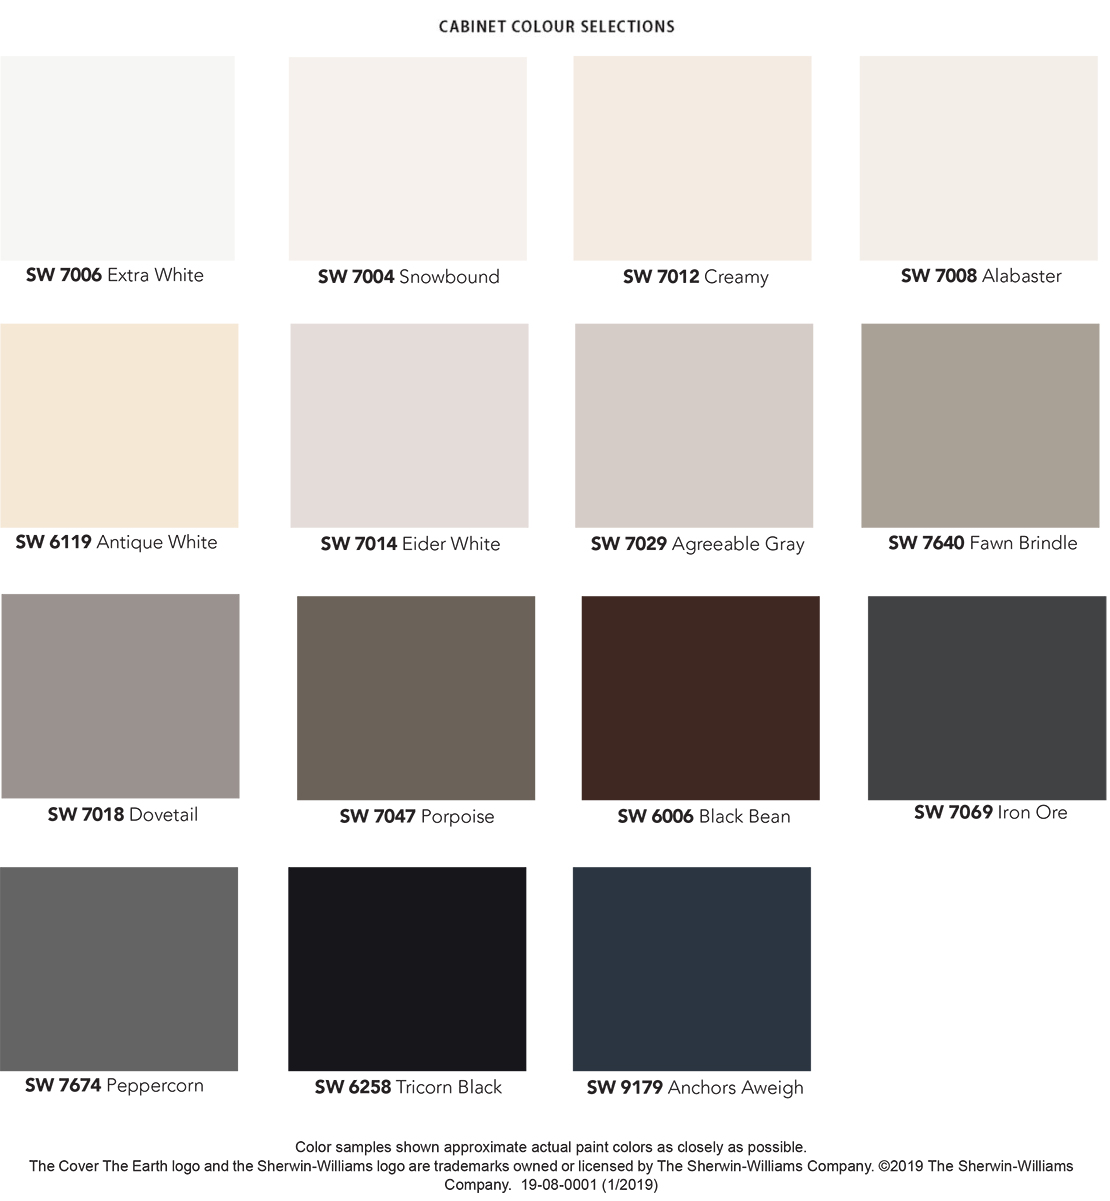 Cabinet Colour Selection